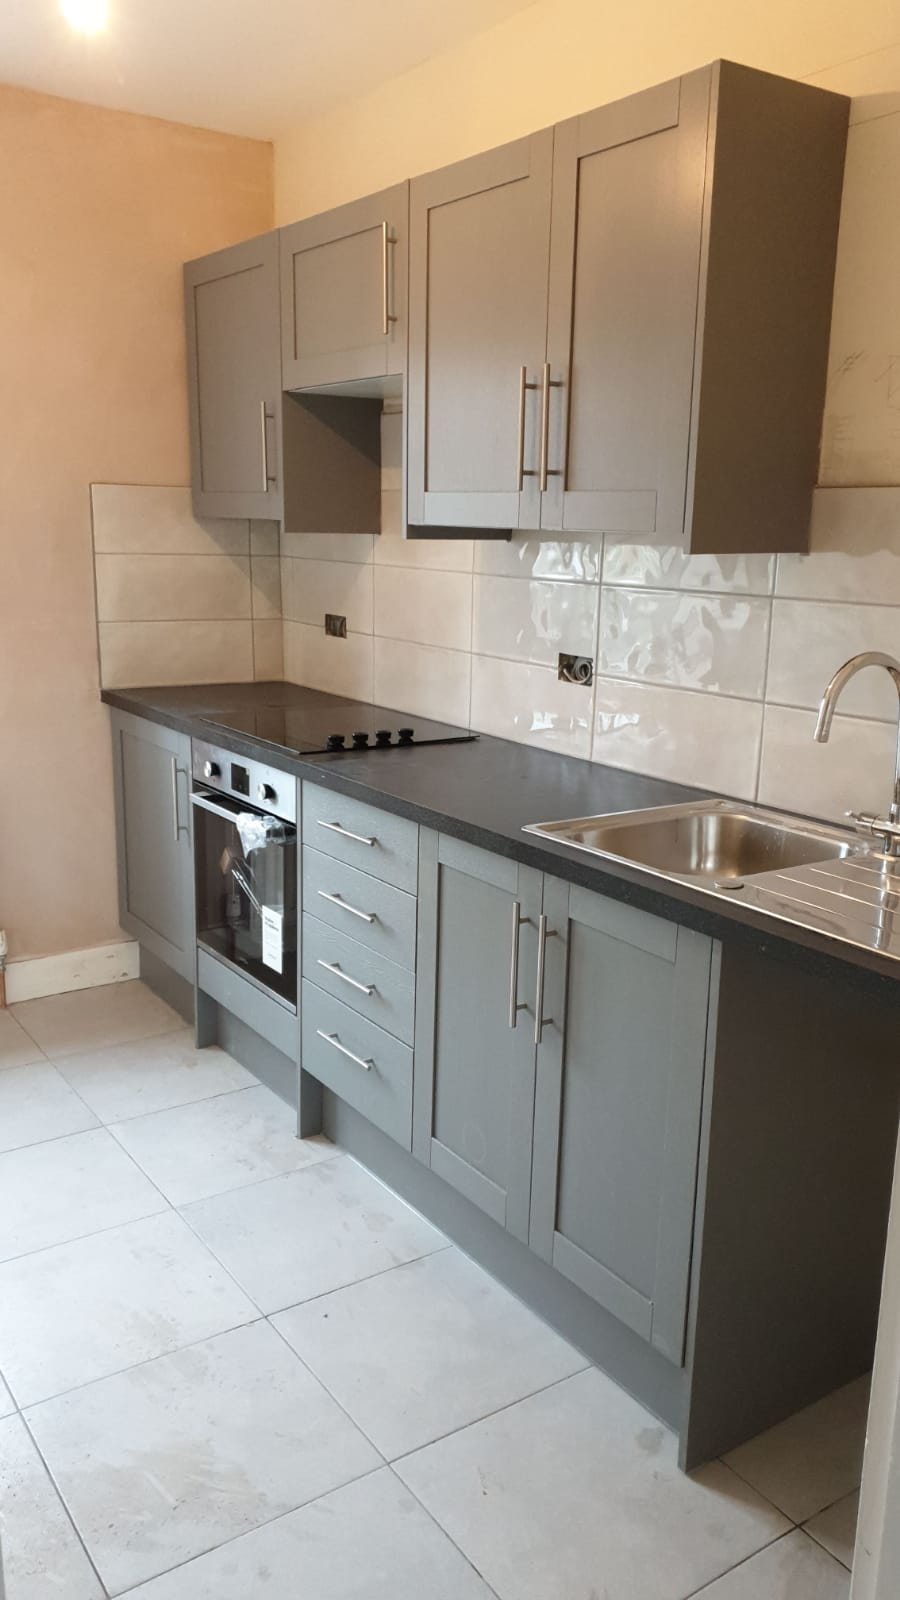 New small kitchen fitted in West Sussex.